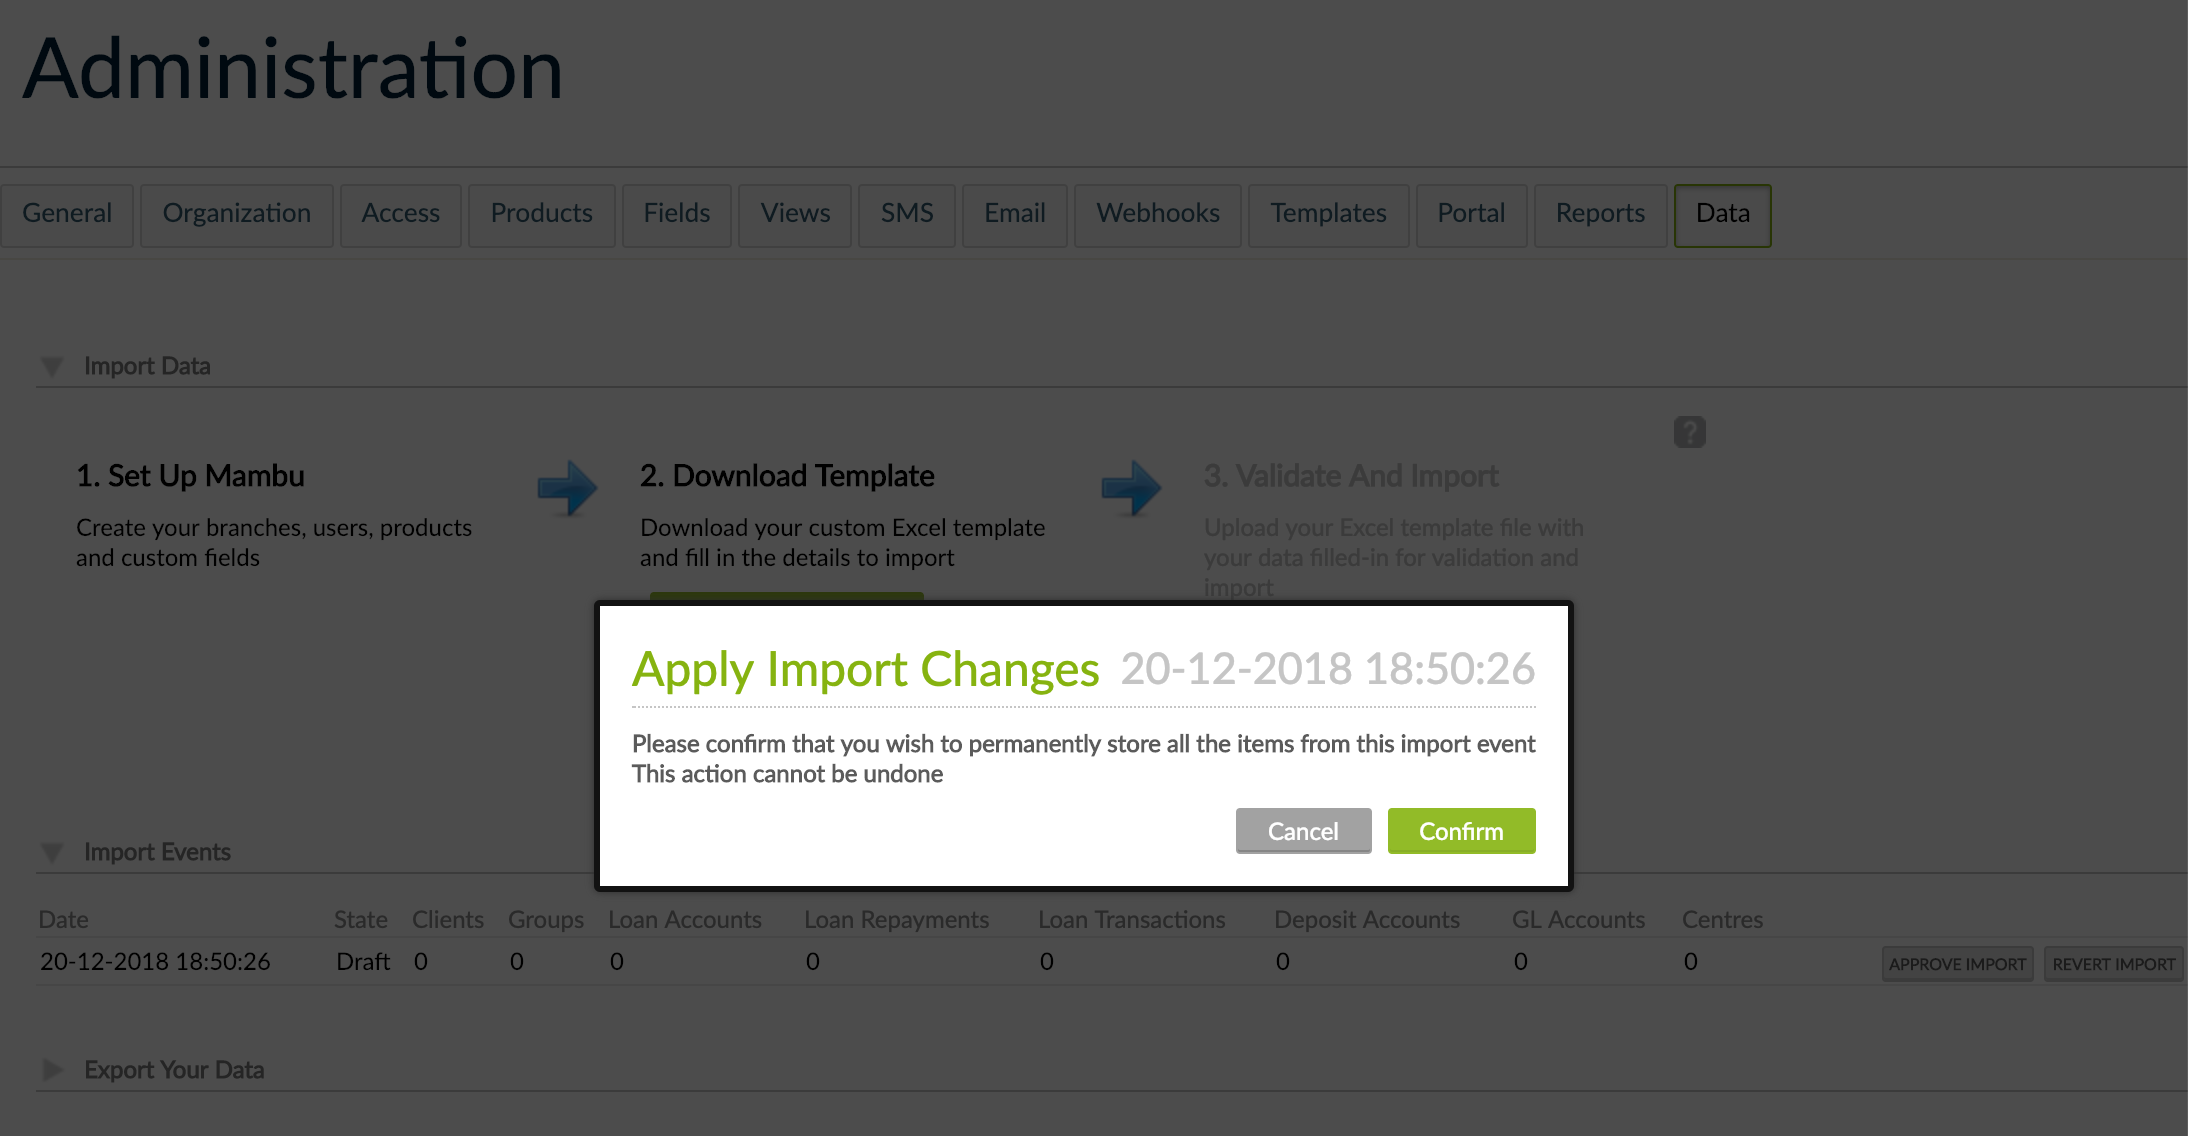 Apply Import Changes pop-up with Cancel and Confirm button